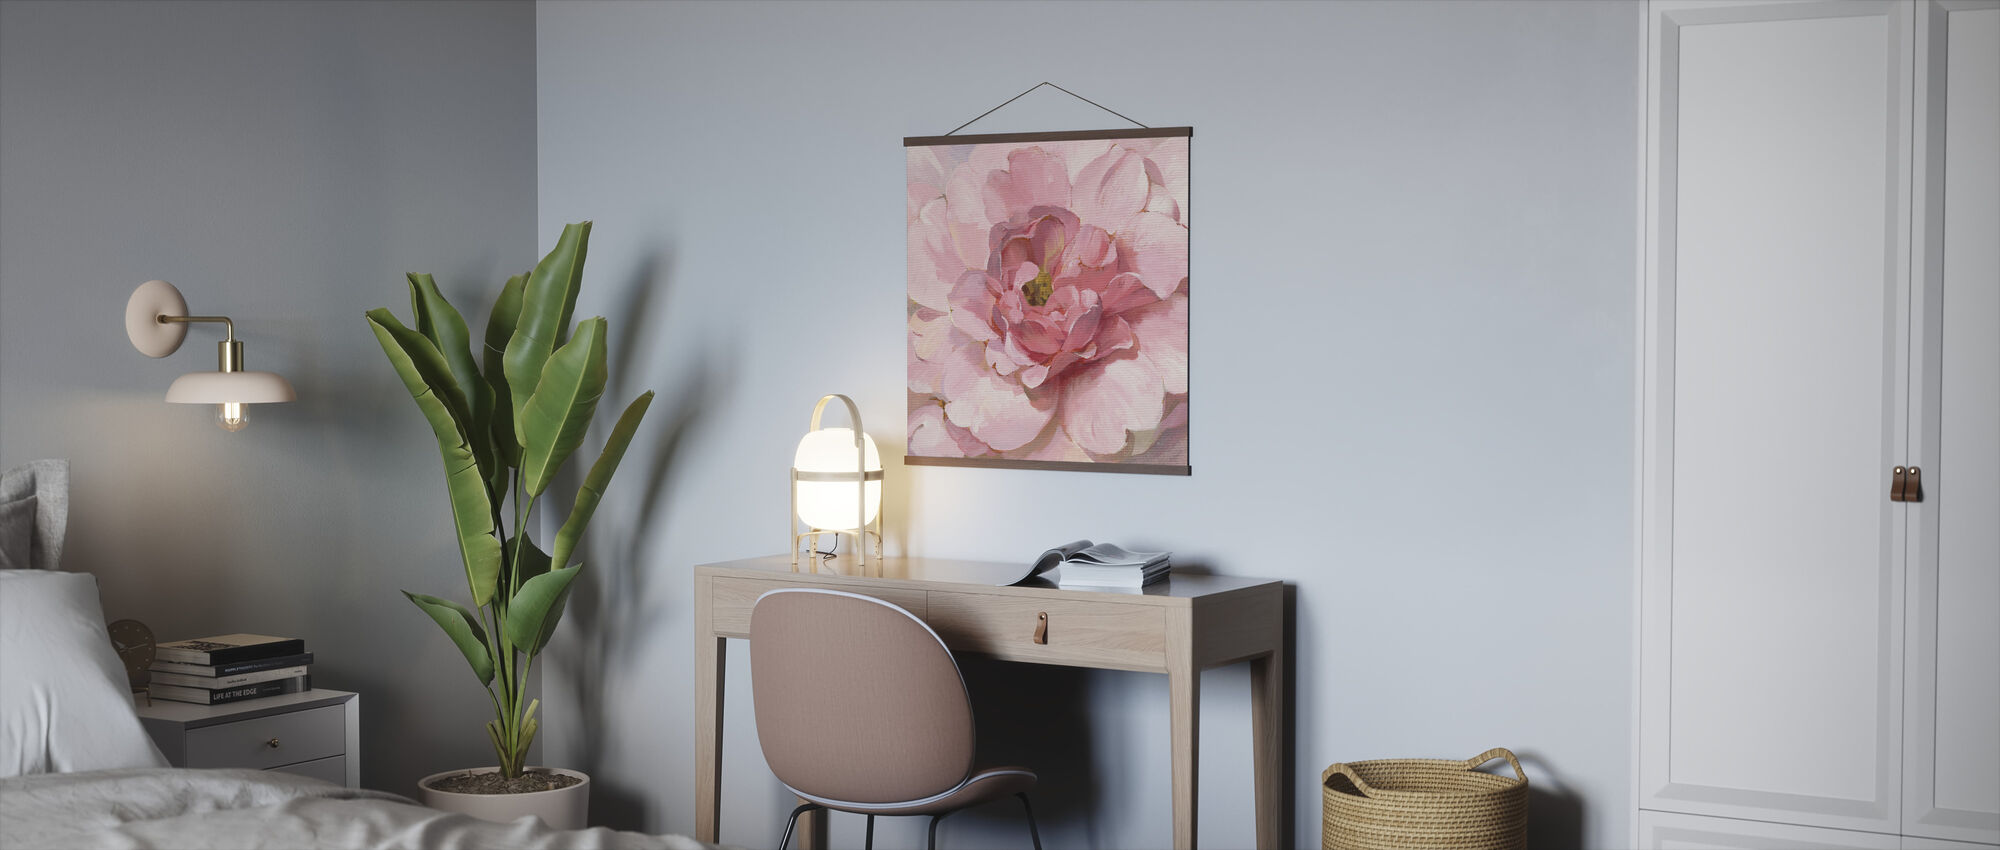 Blushing Peony - Poster - Office